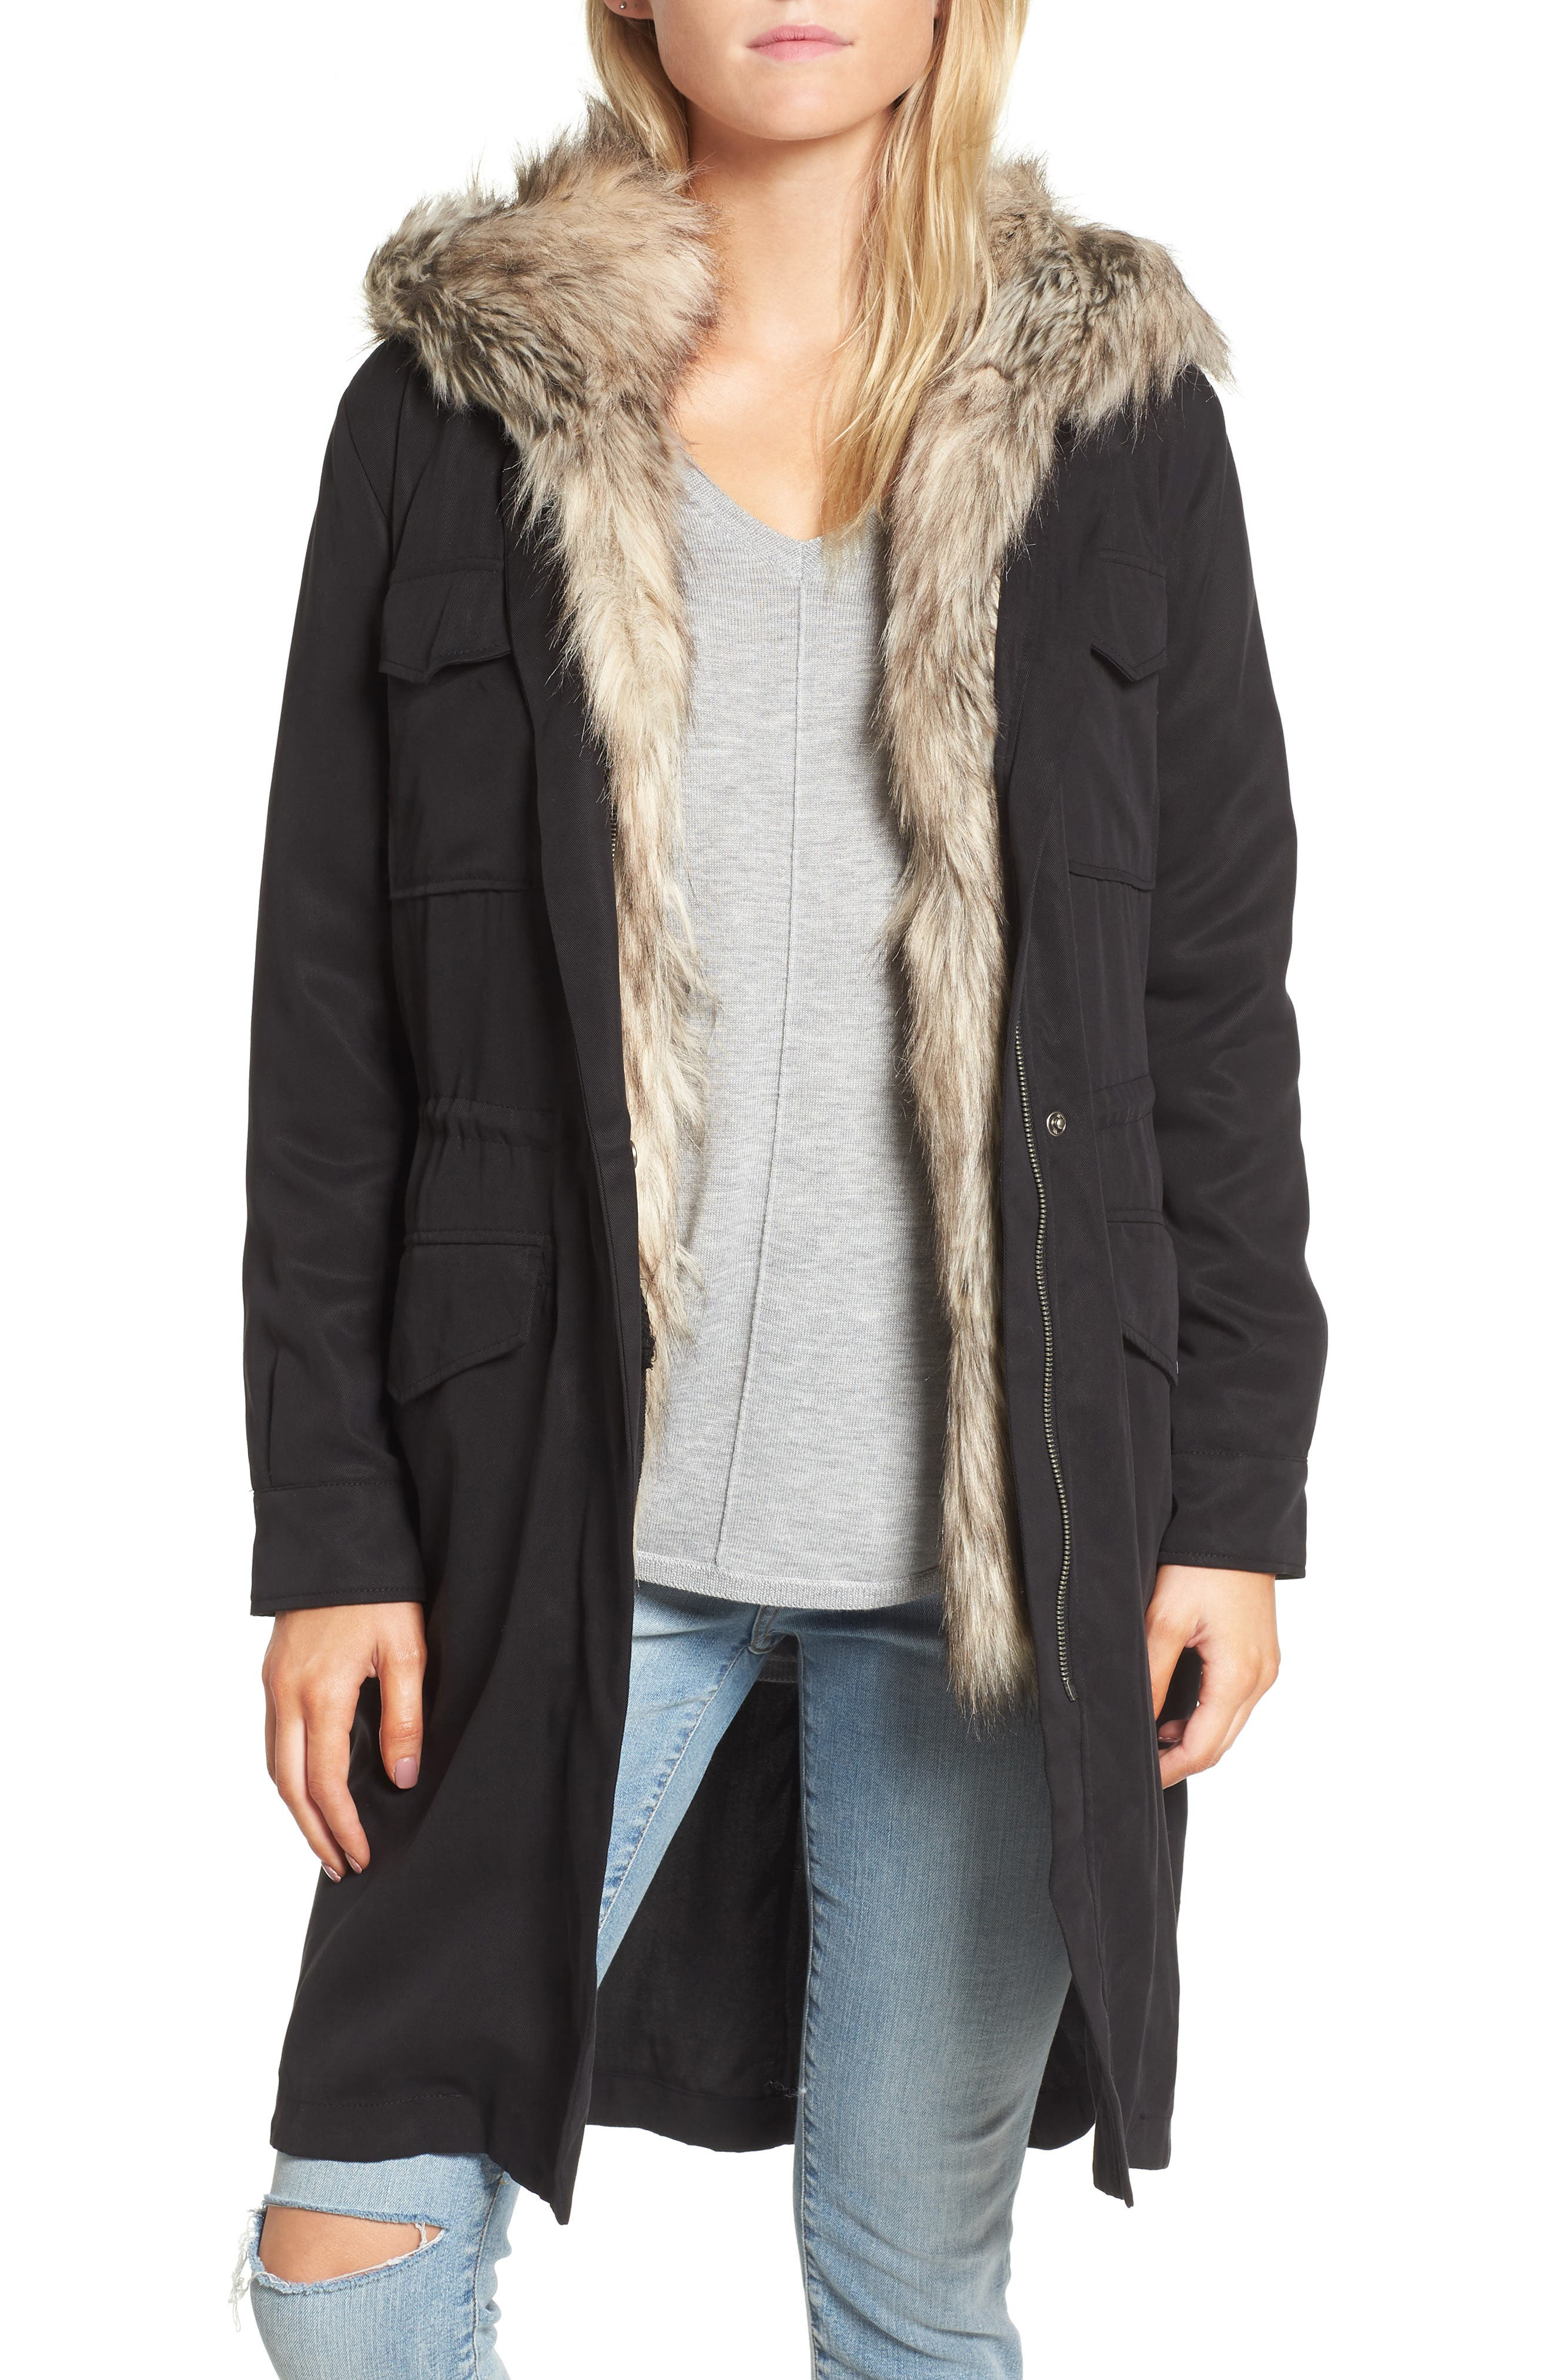 Walsh Tencel<sup>®</sup> Coat with Detachable Hooded Faux Fur Vest,                         Main,                         color, 001